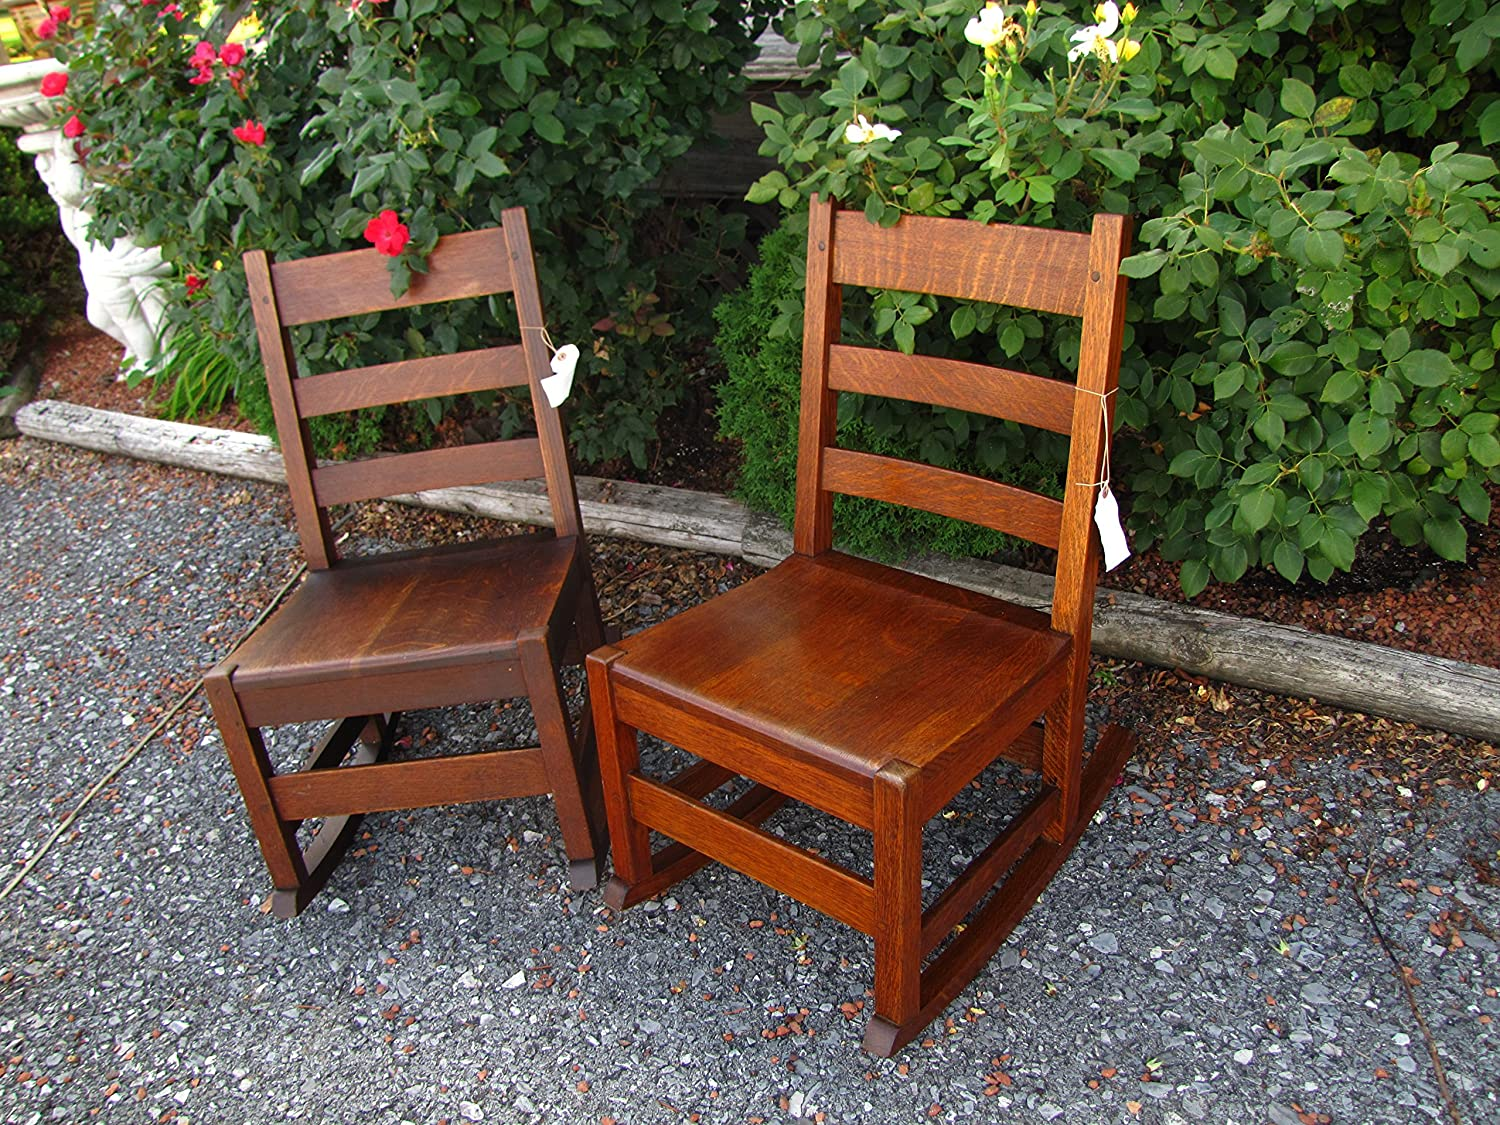 Peachy Amazon Com Antique Pair Of Stickley Brothers Rocking Chairs Machost Co Dining Chair Design Ideas Machostcouk